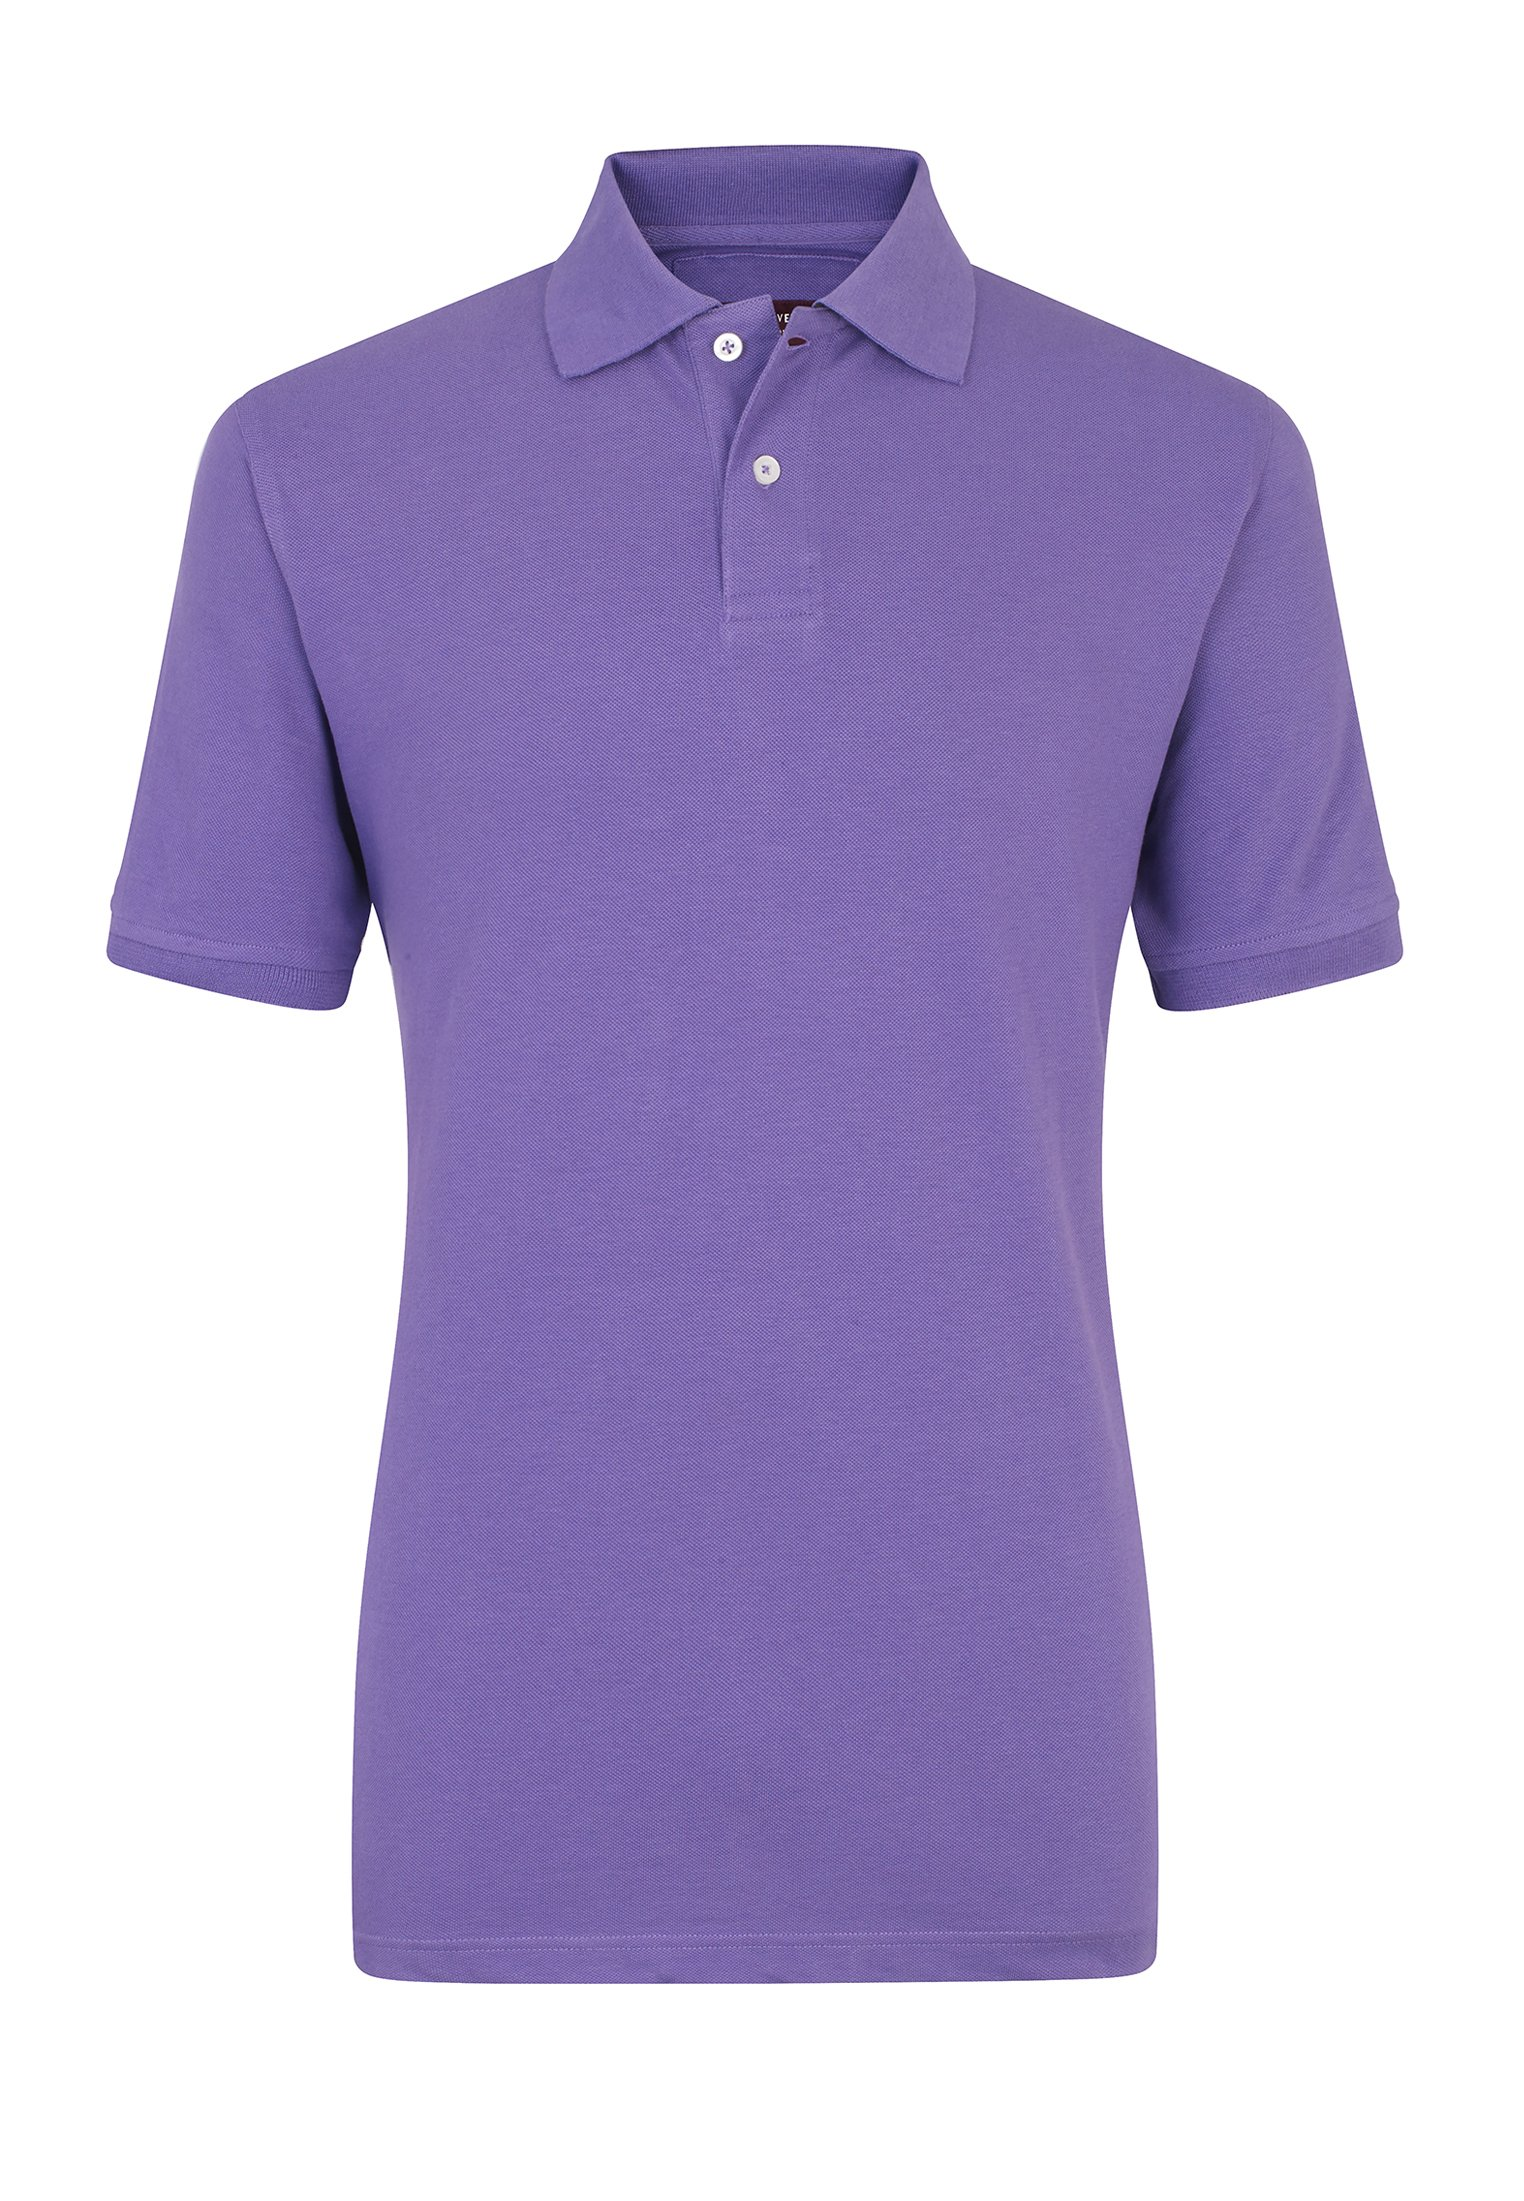 26b6d336fa7 Milford Heather 100% Pique Cotton Polo Shirt